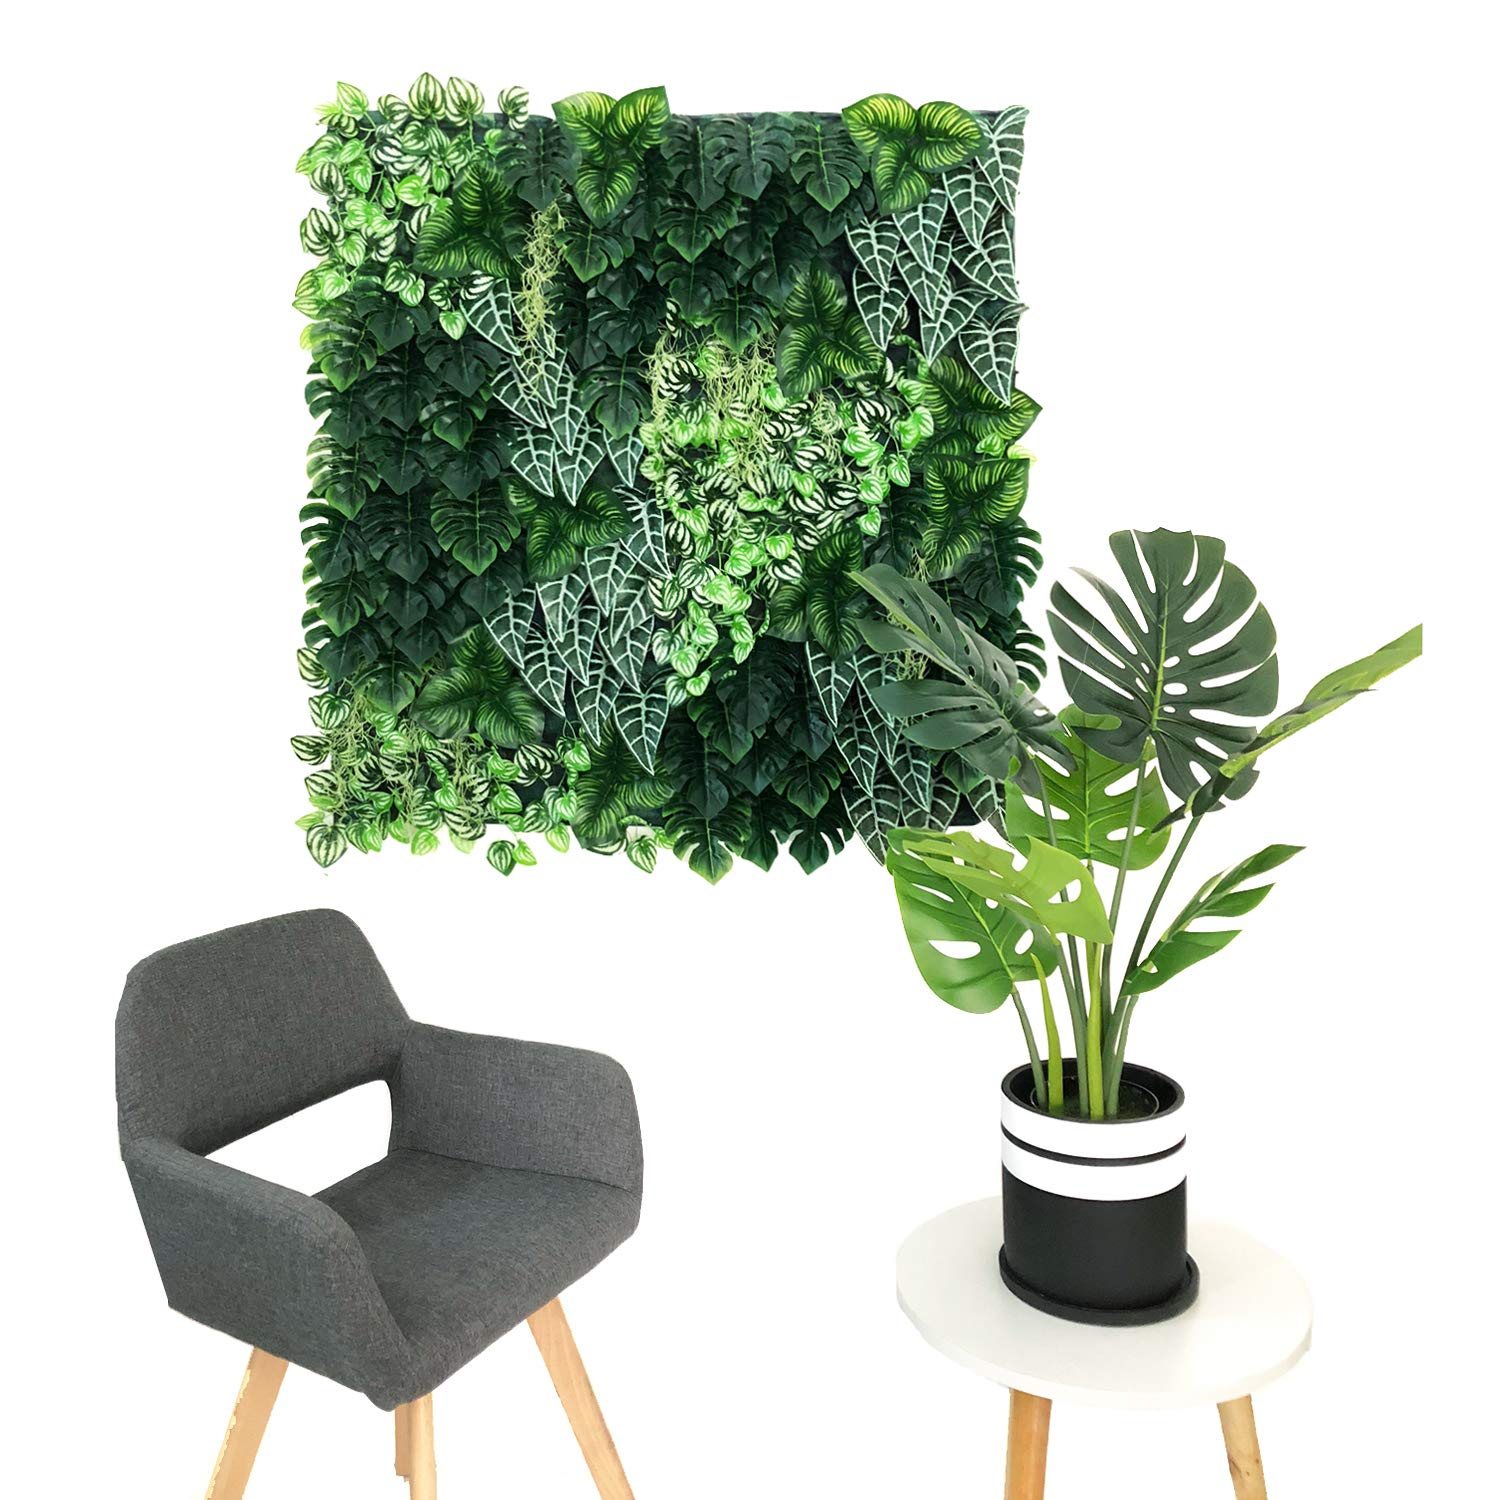 Cable Ties Included BESAMENATURE 30pcs 1x1ft Artificial Plants Wall Boxwood Hedge Mat Dark Green UV Protection High Density Greenery Panels